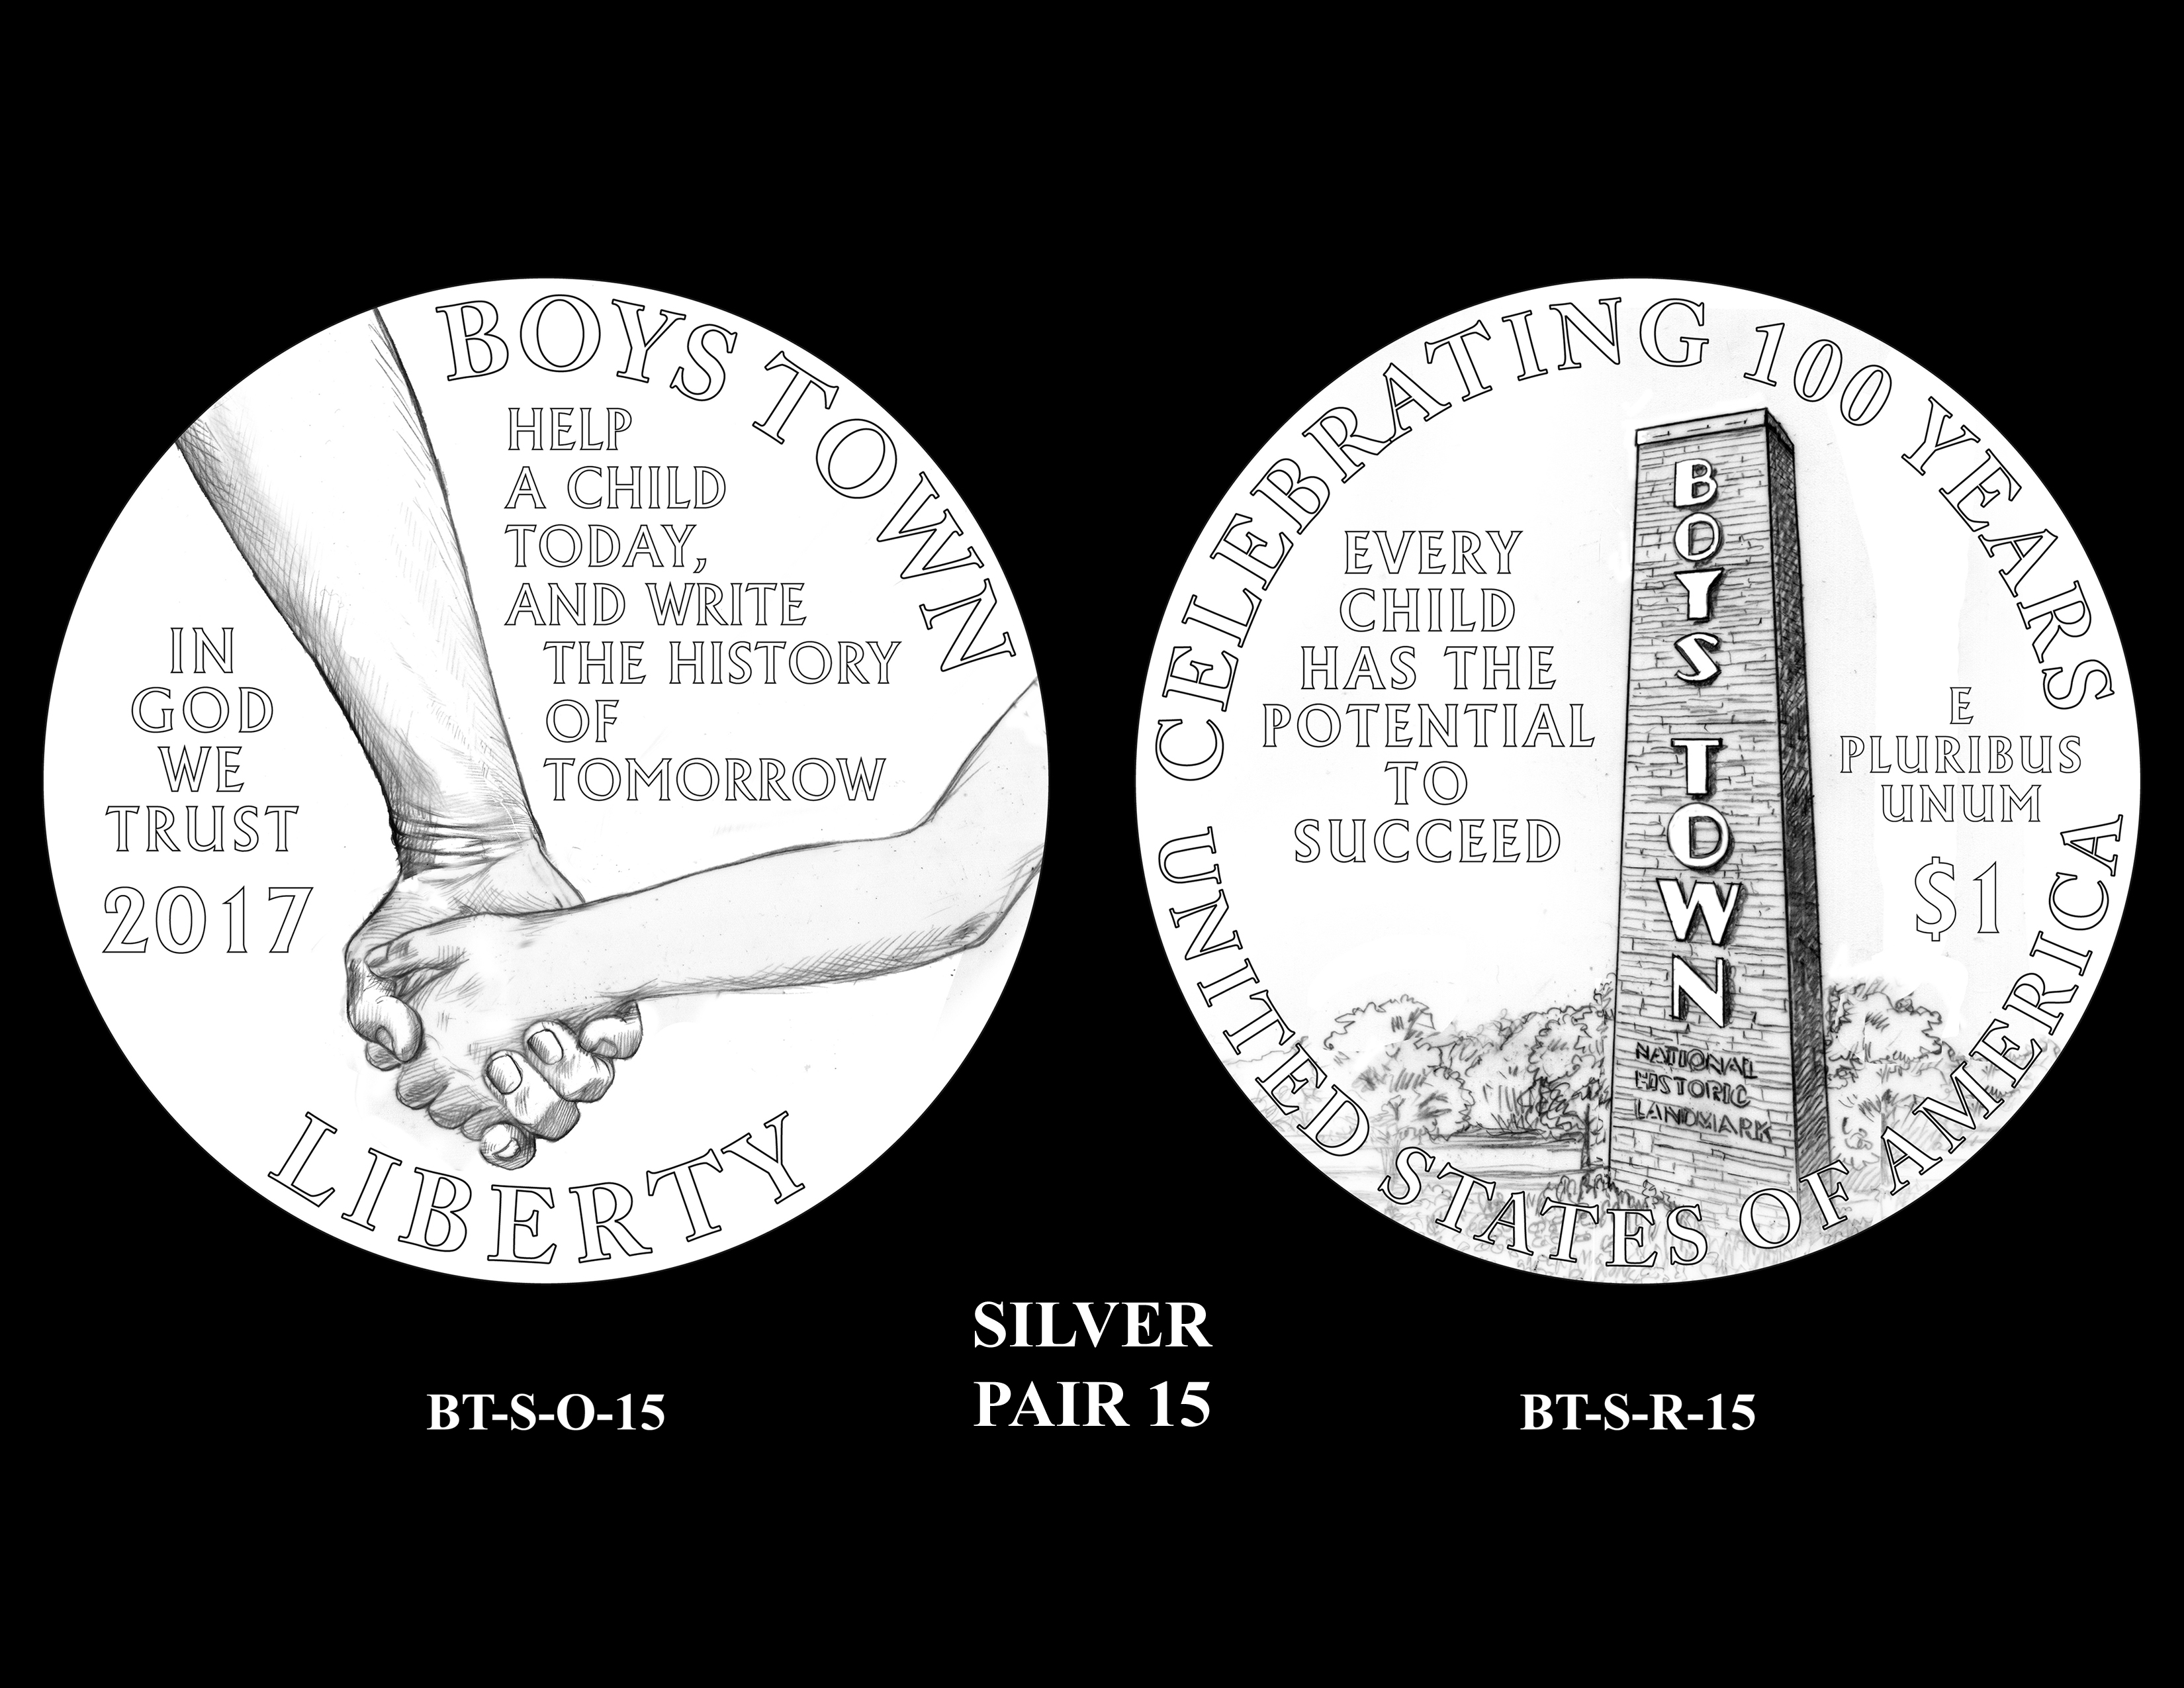 Silver-Pair-15 -- 2017 Boystown Centennial Commemorative Coin  Program